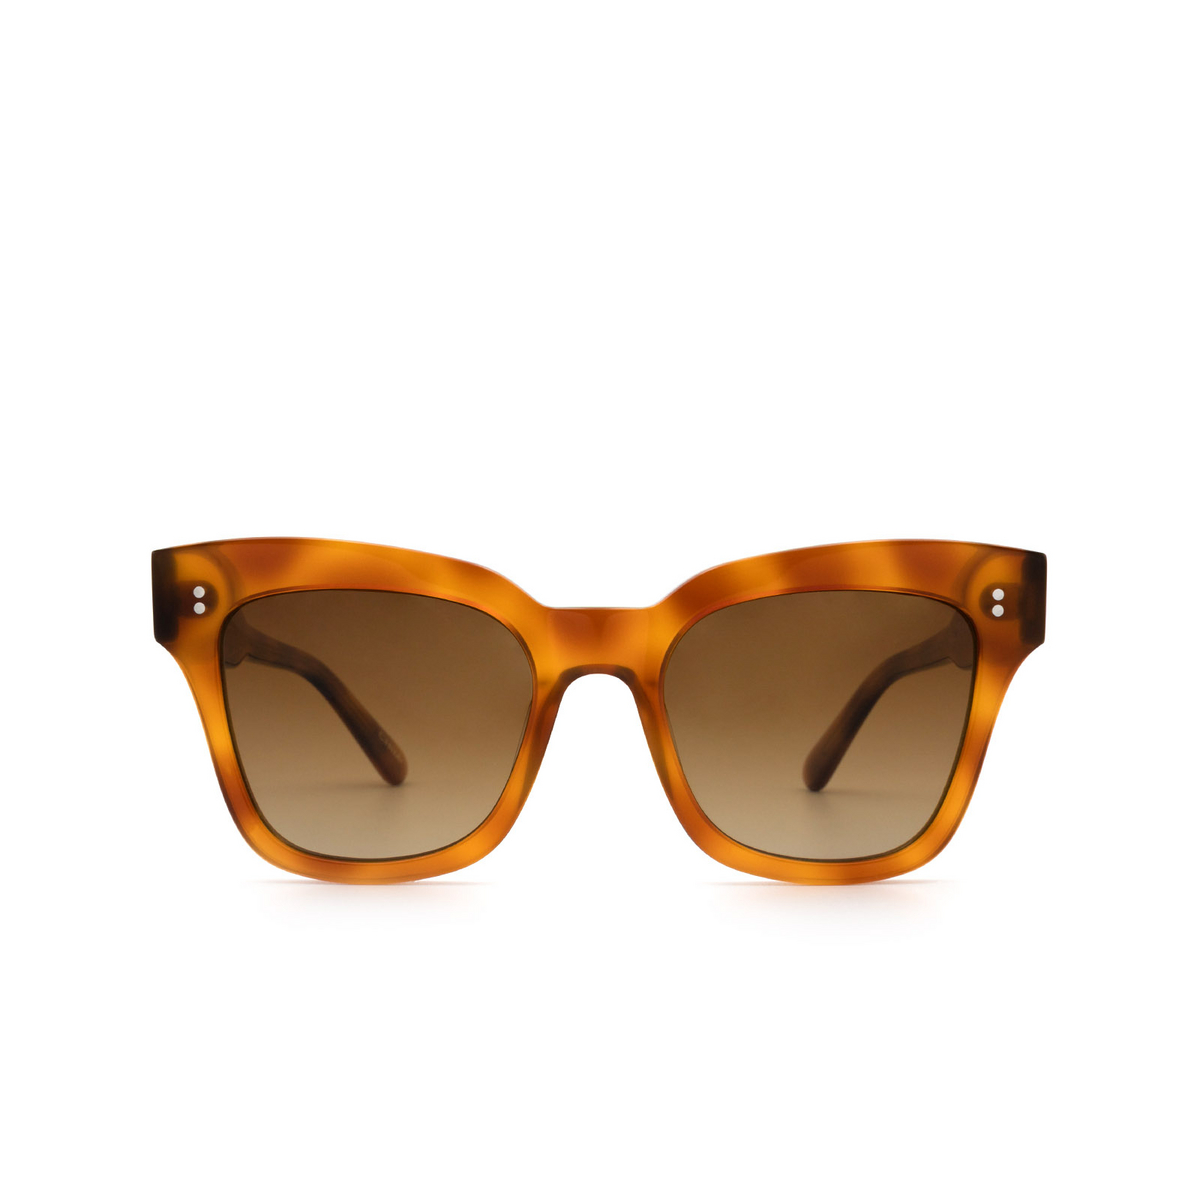 Chimi® Butterfly Sunglasses: 07 color Havana - front view.